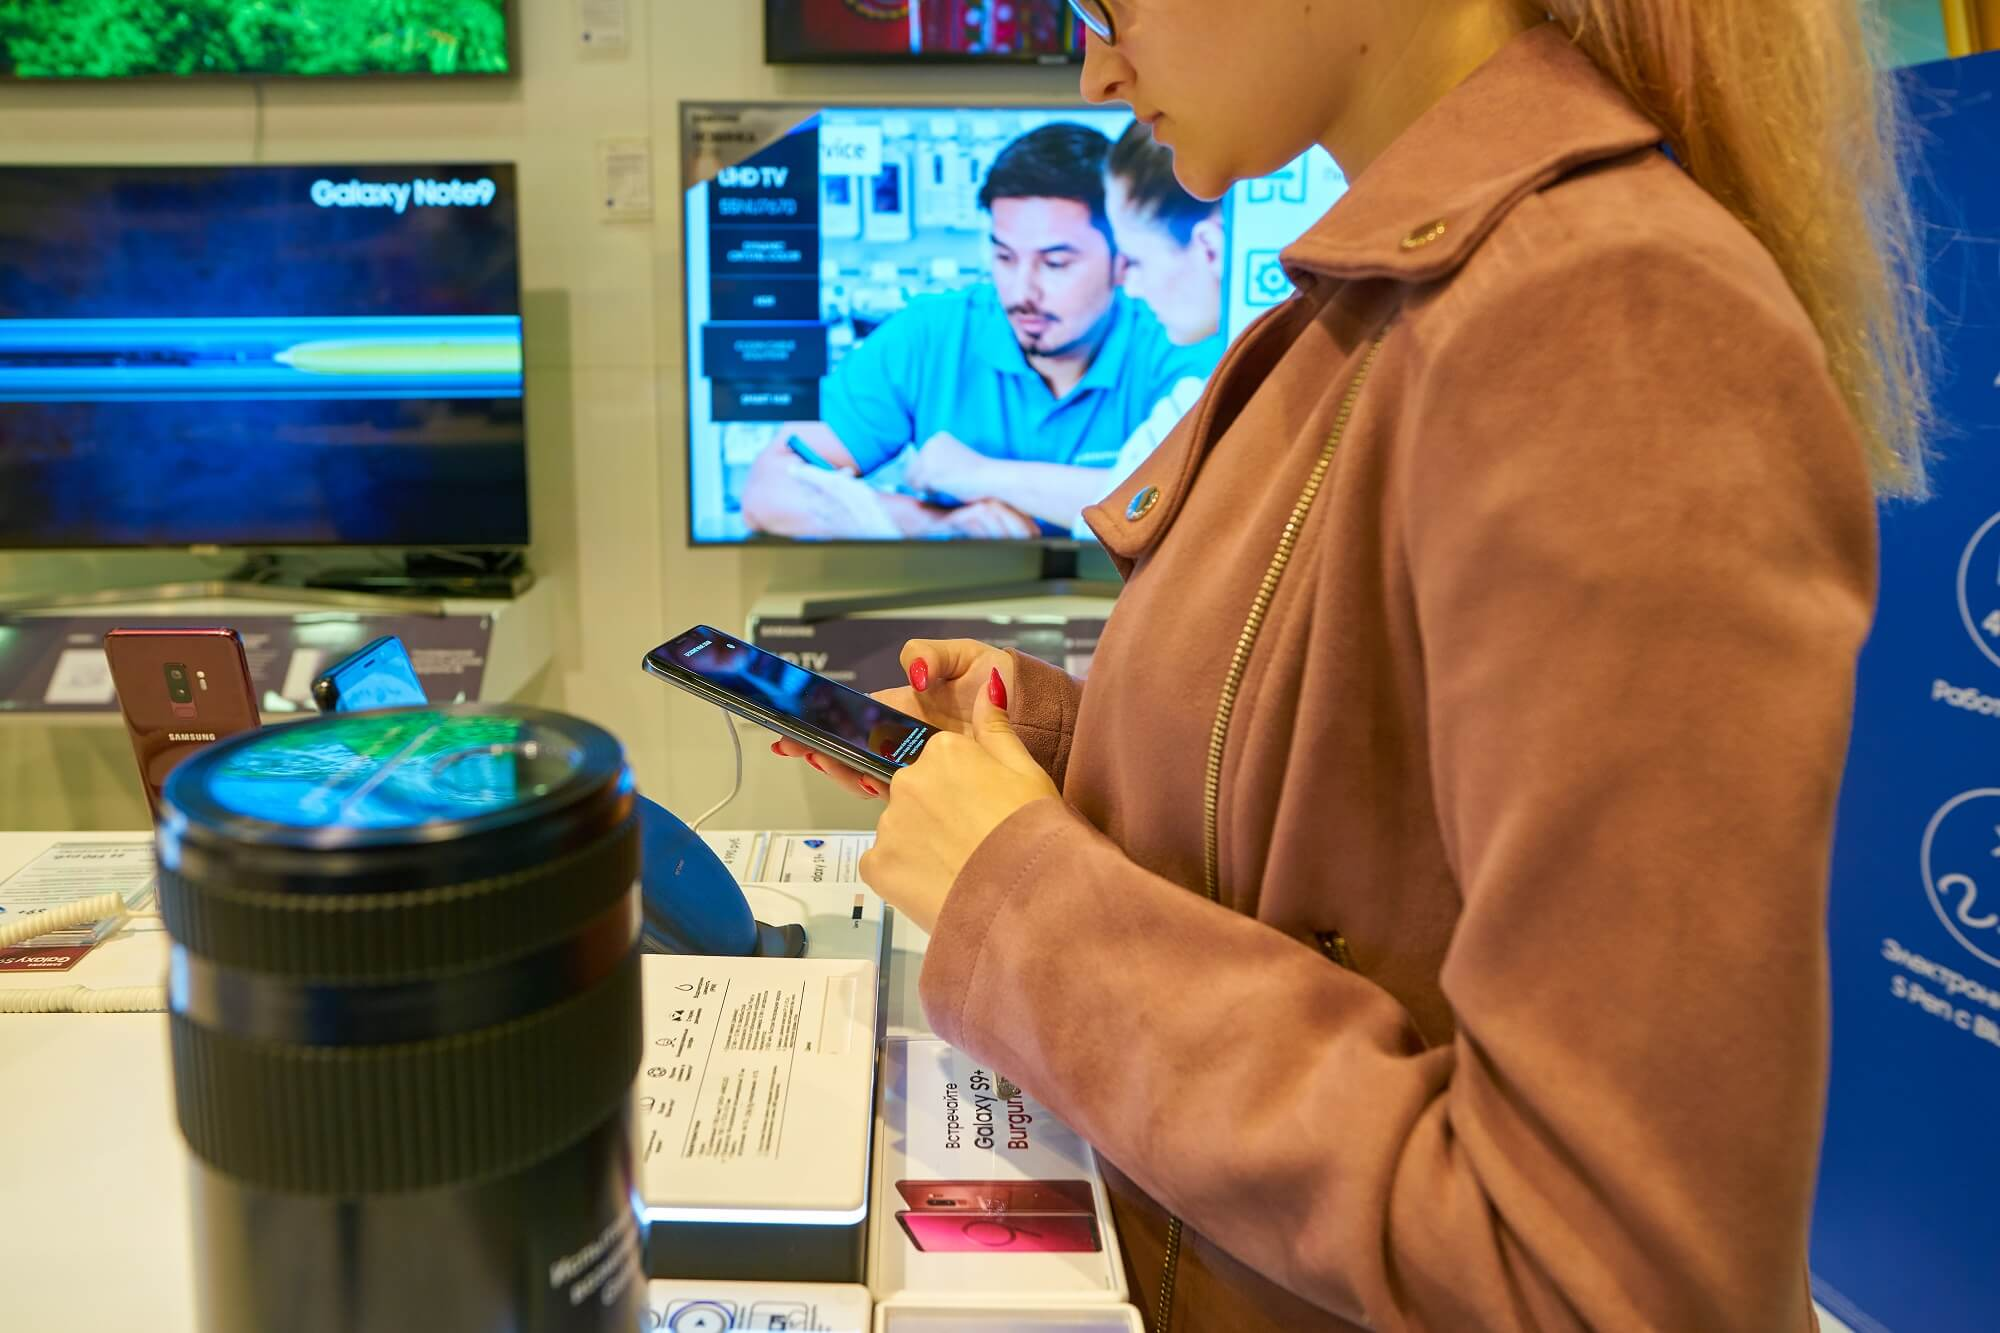 woman hold smartphone at Samsung store